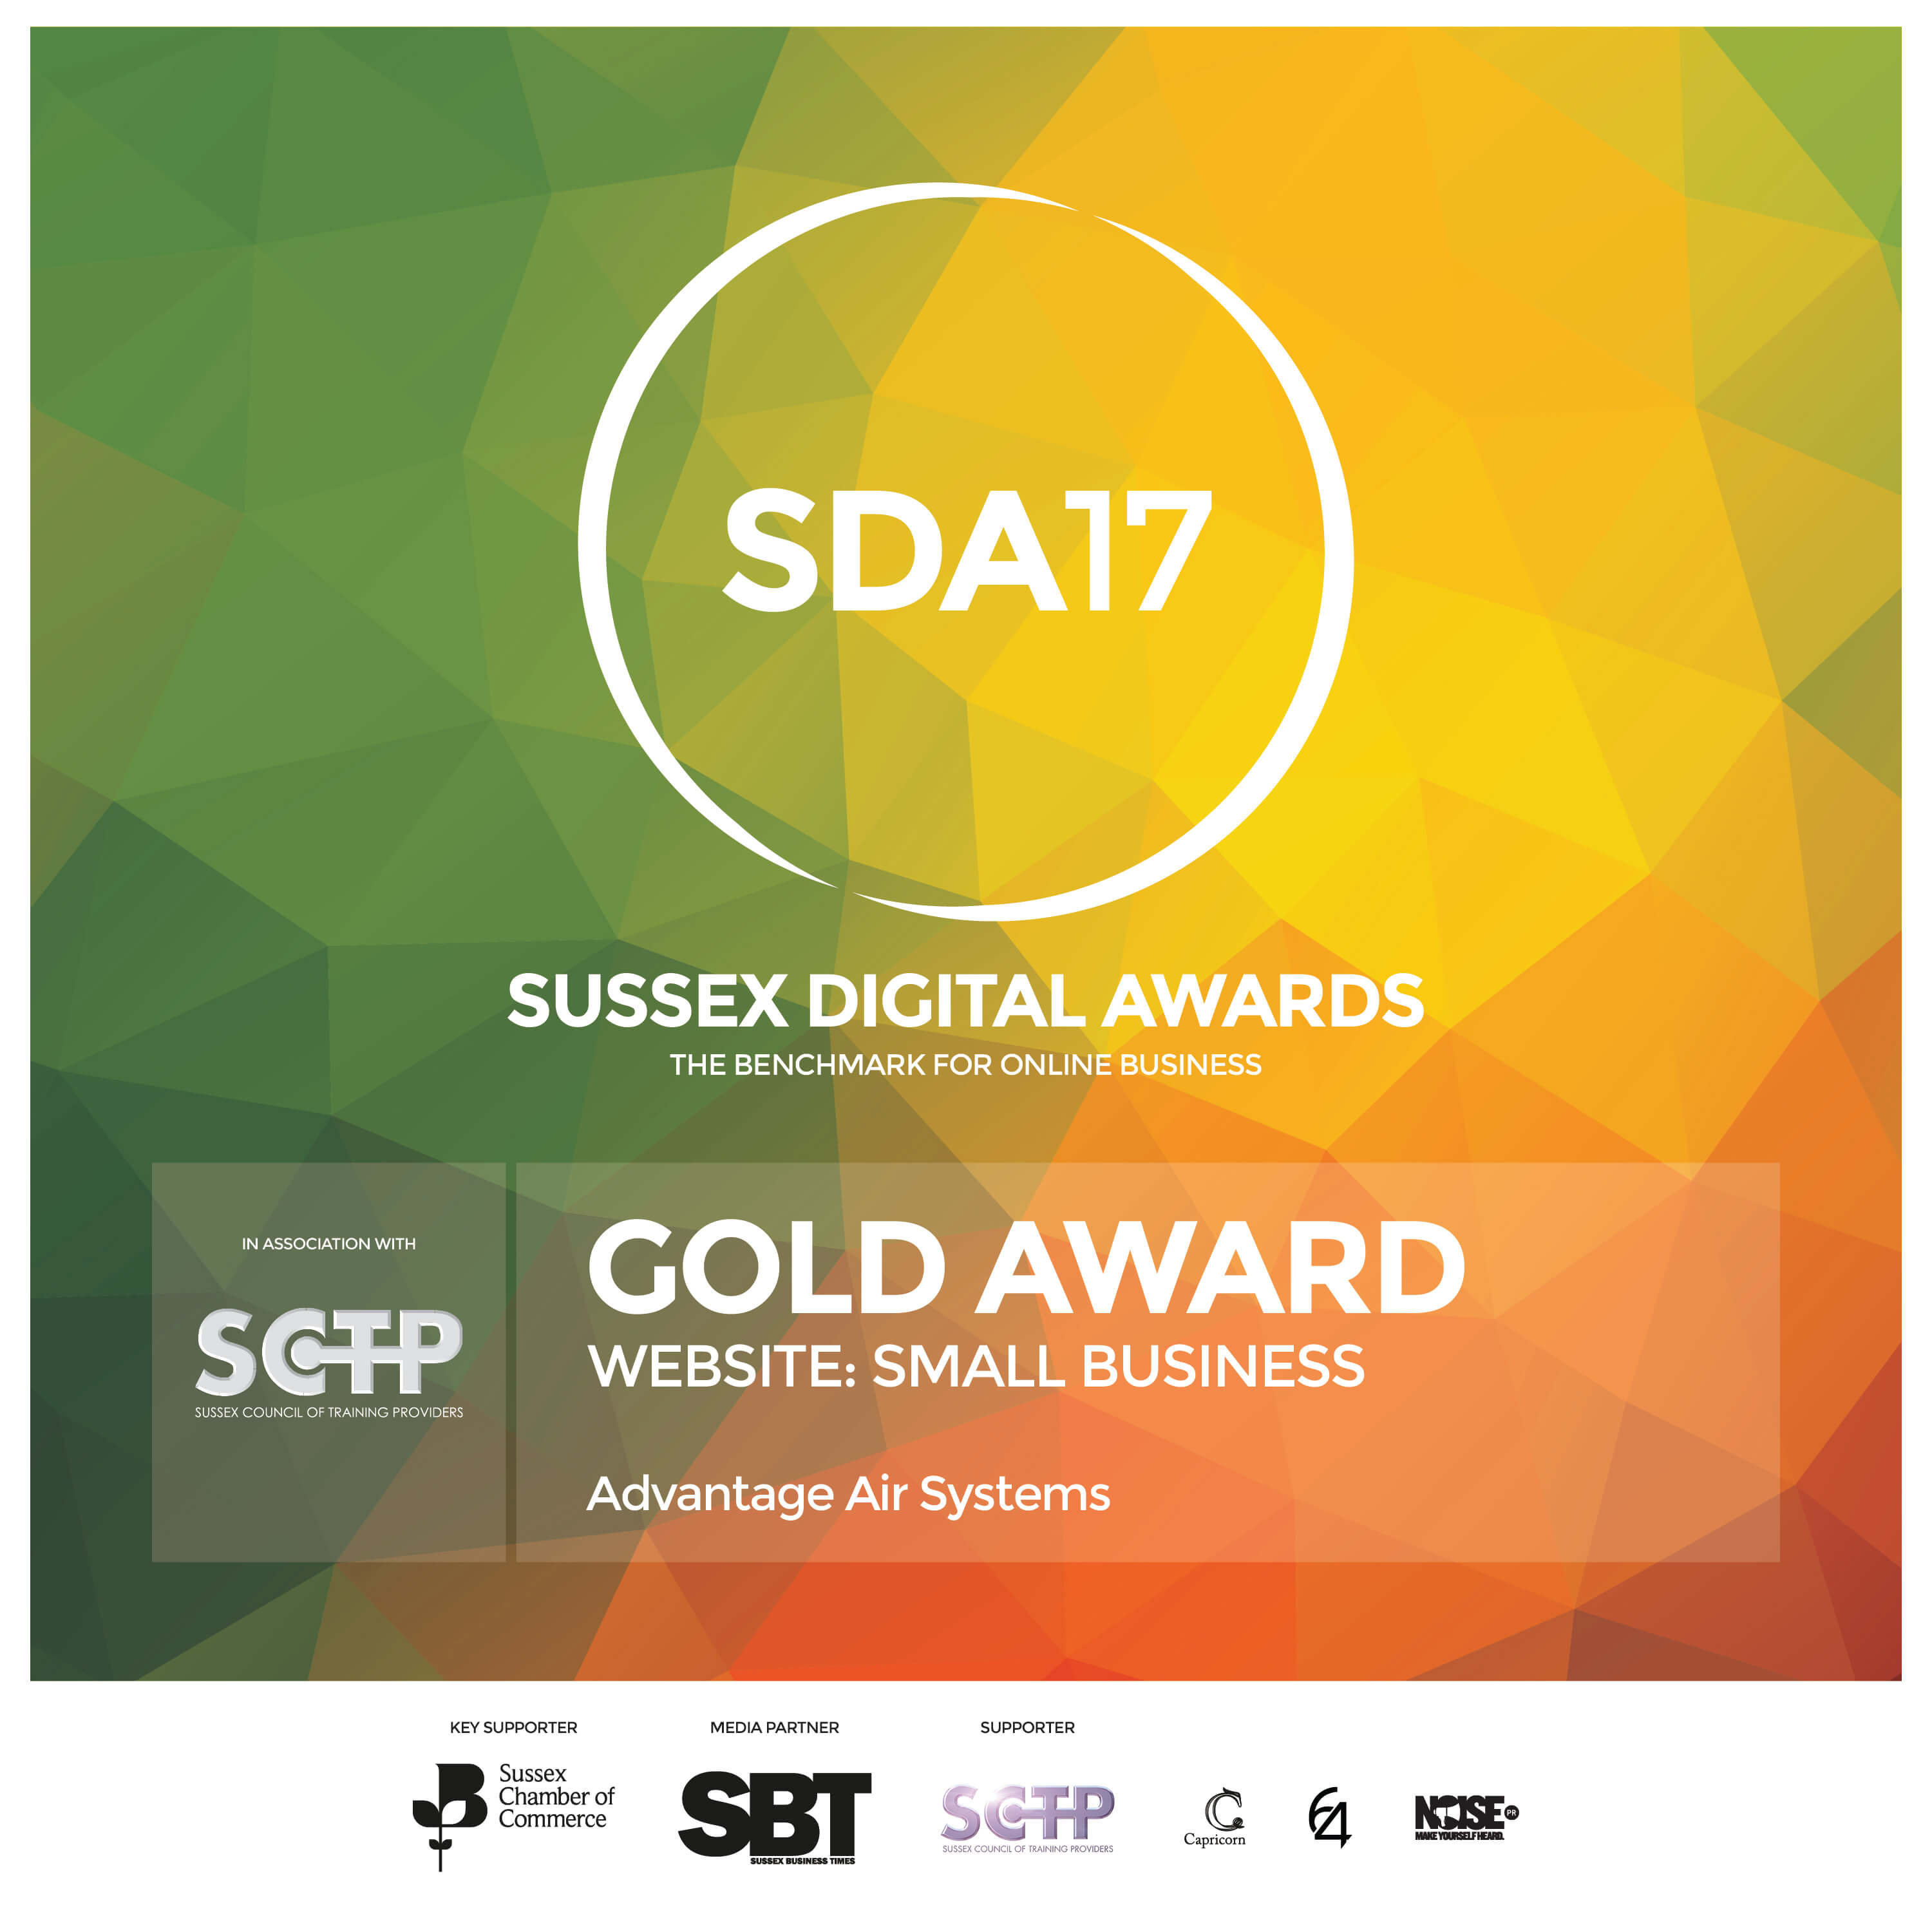 Sussex Digital Awards 2017